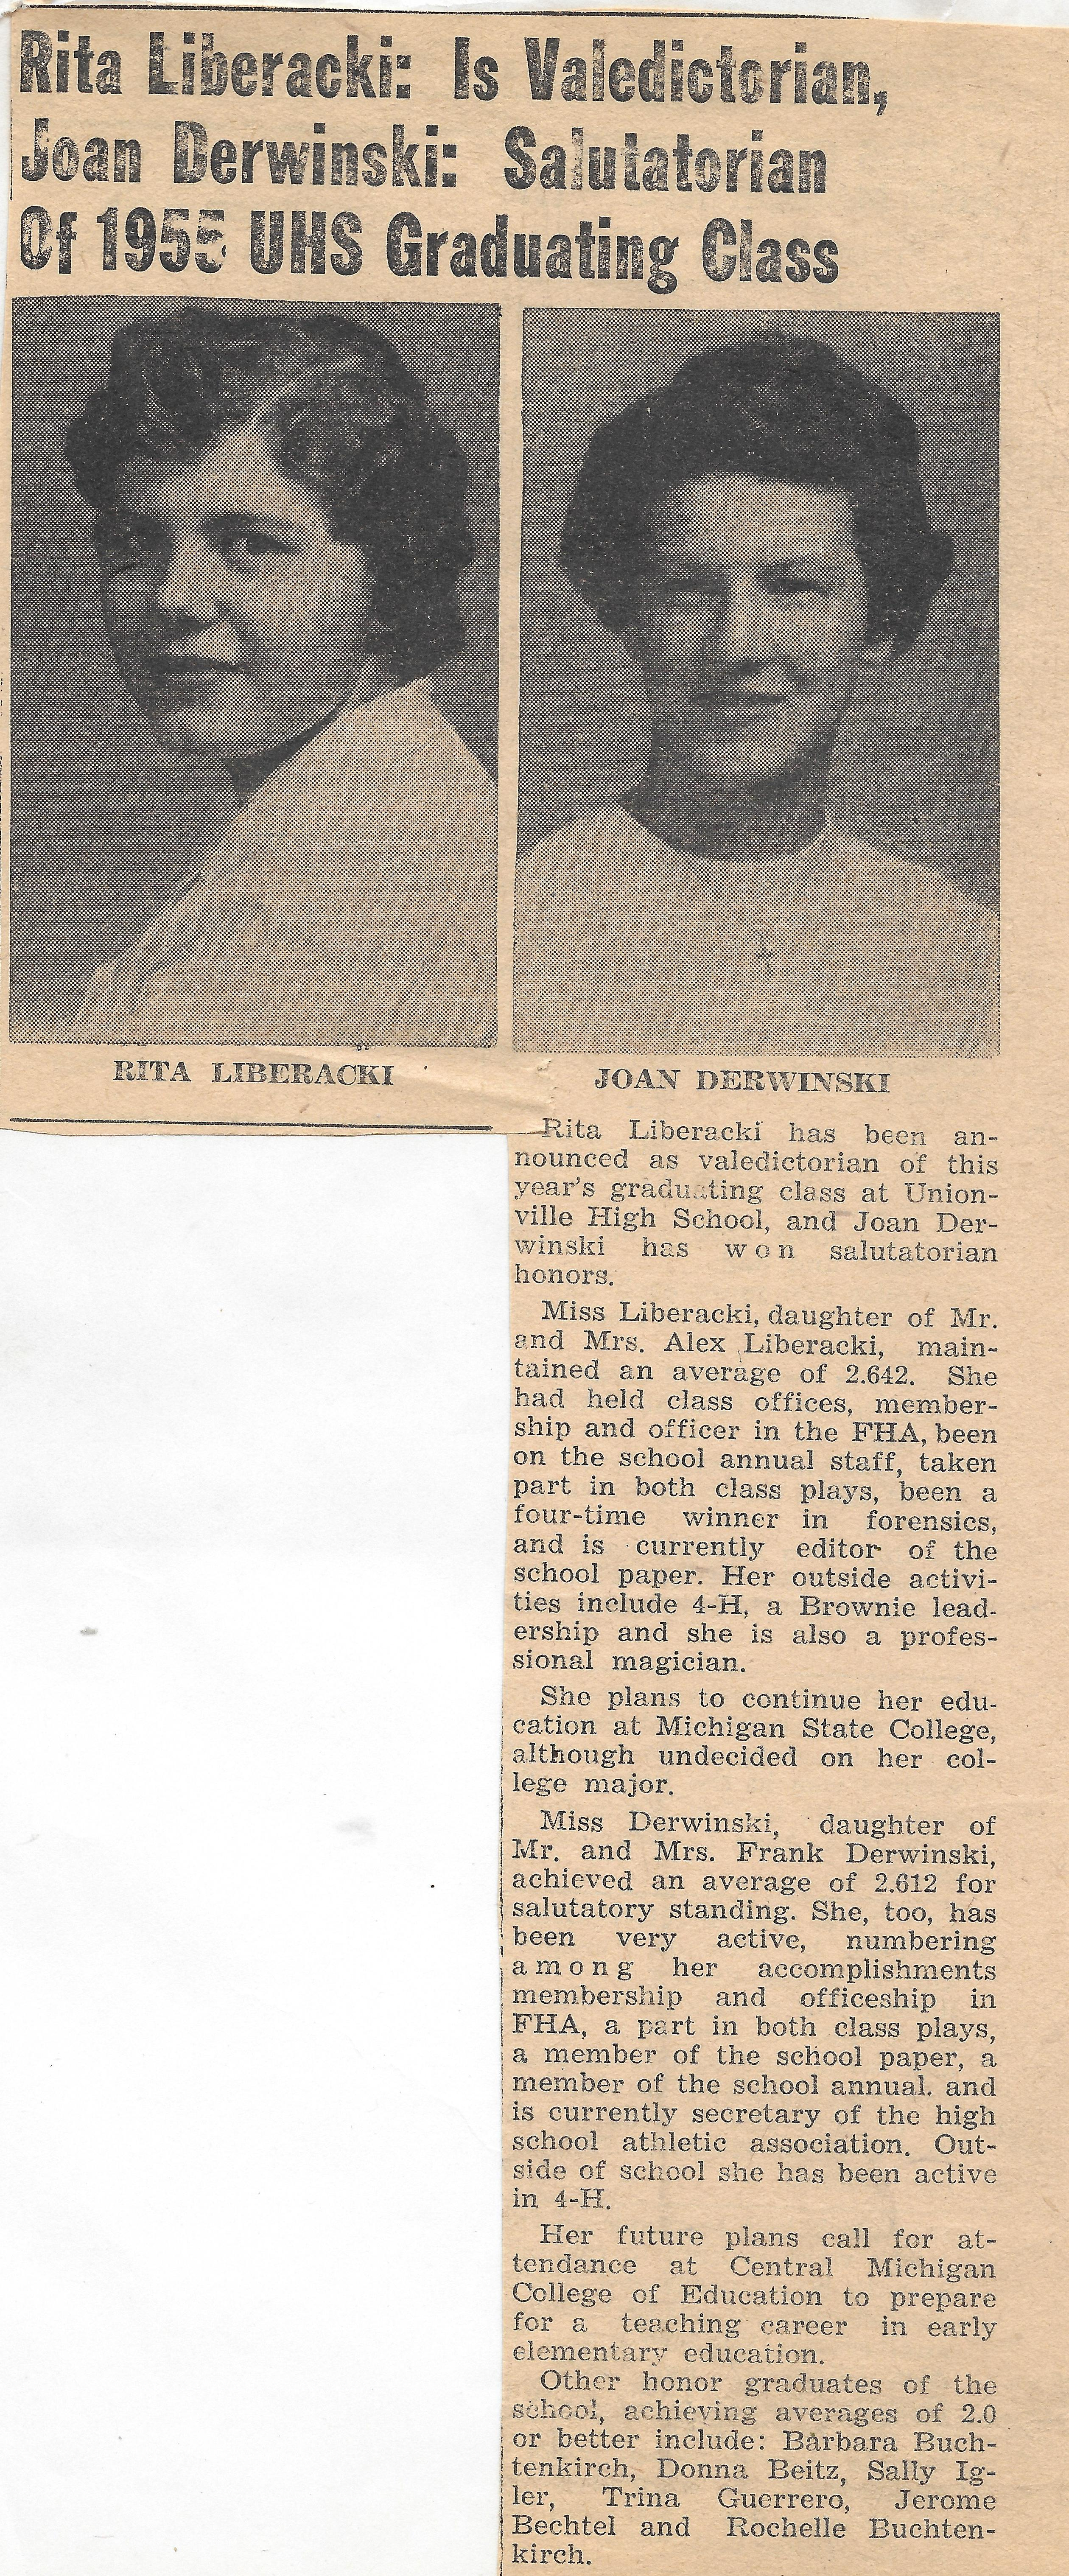 Newspaper article about Rita Liberacki being valedictorian of her high school graduating class.